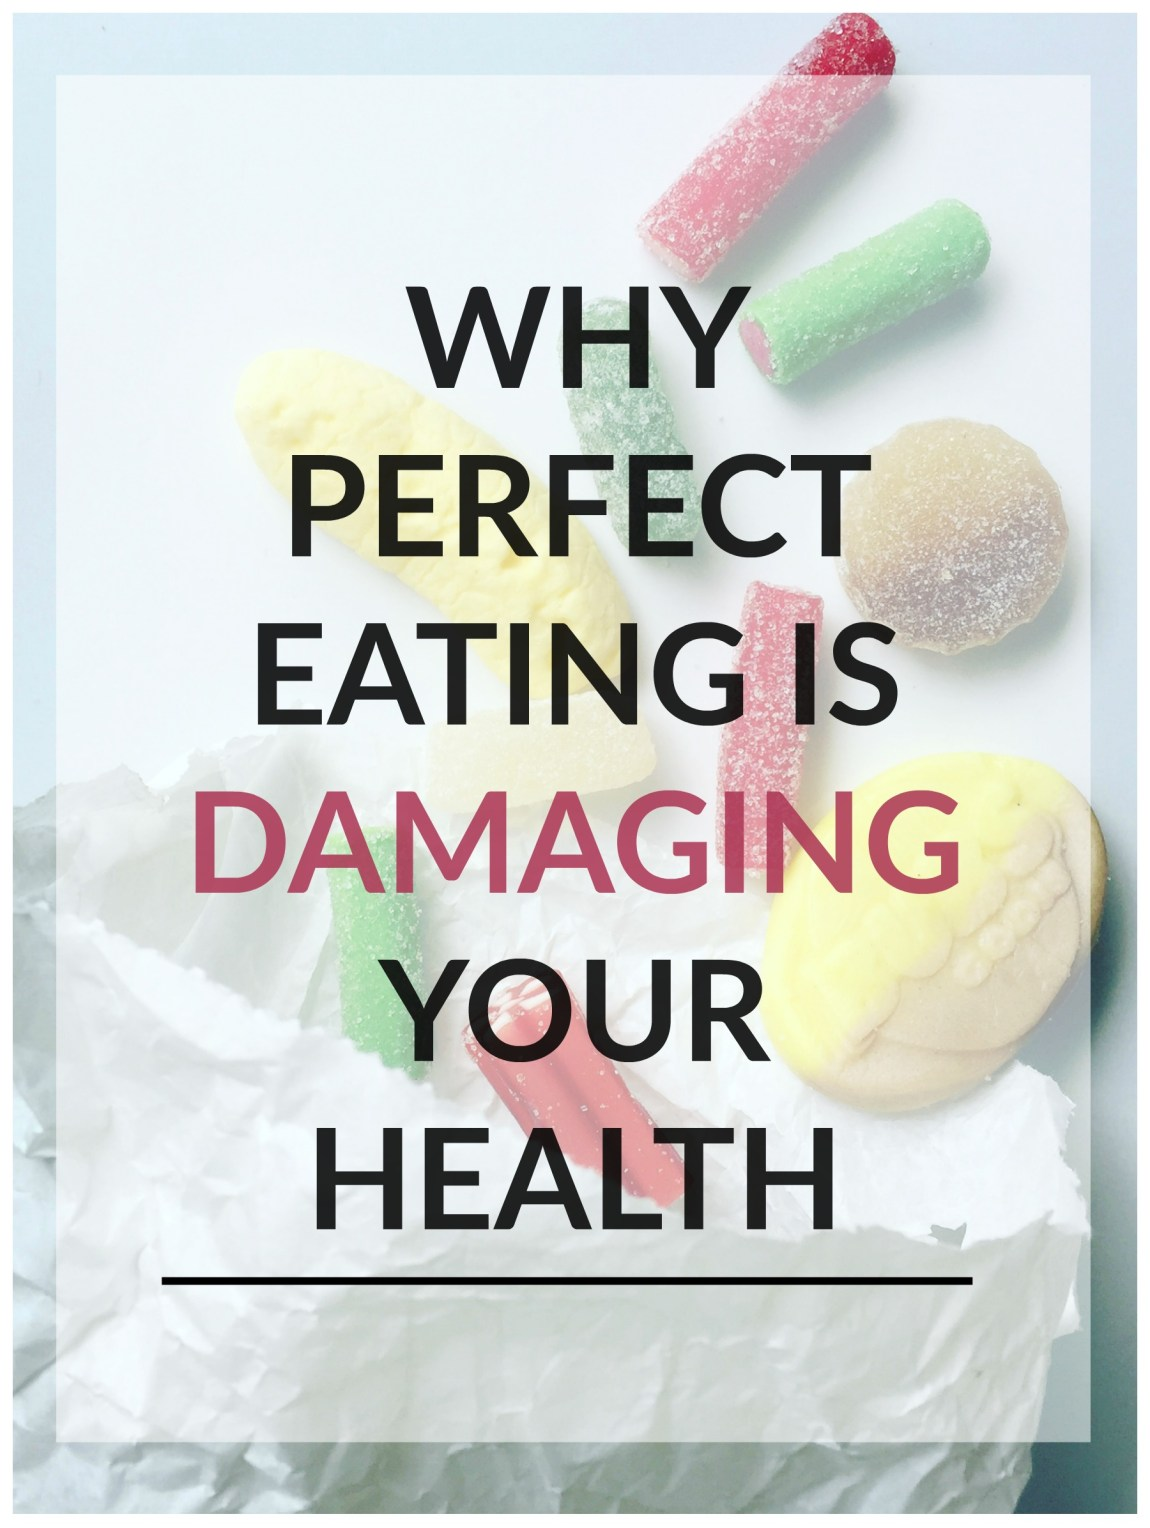 Seeing, living and breathing perfect eating all the time is damaging your (mental) health. Behind the highlight reels is balance, not perfect eating.